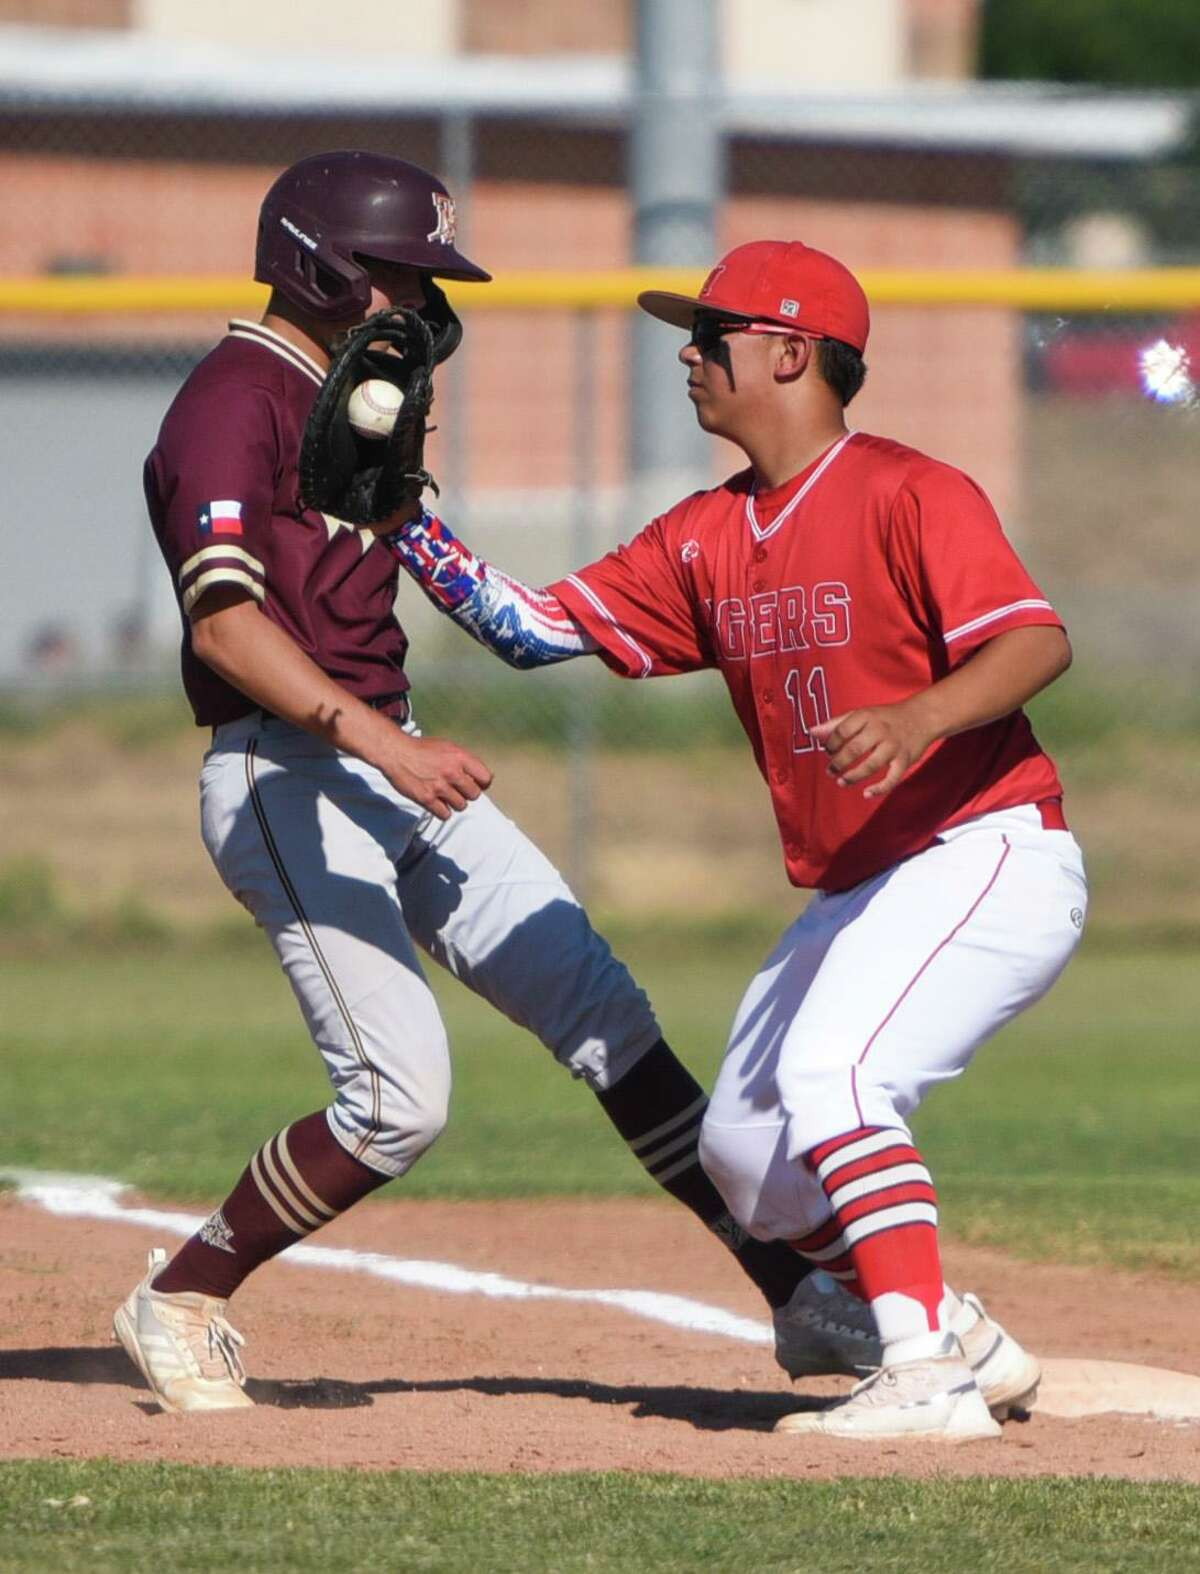 Isaac Ornelas pitched a no-hitter Thursday with 11 strikeouts in five innings in Martin's 12-0 victory at the Brownsville tournament.